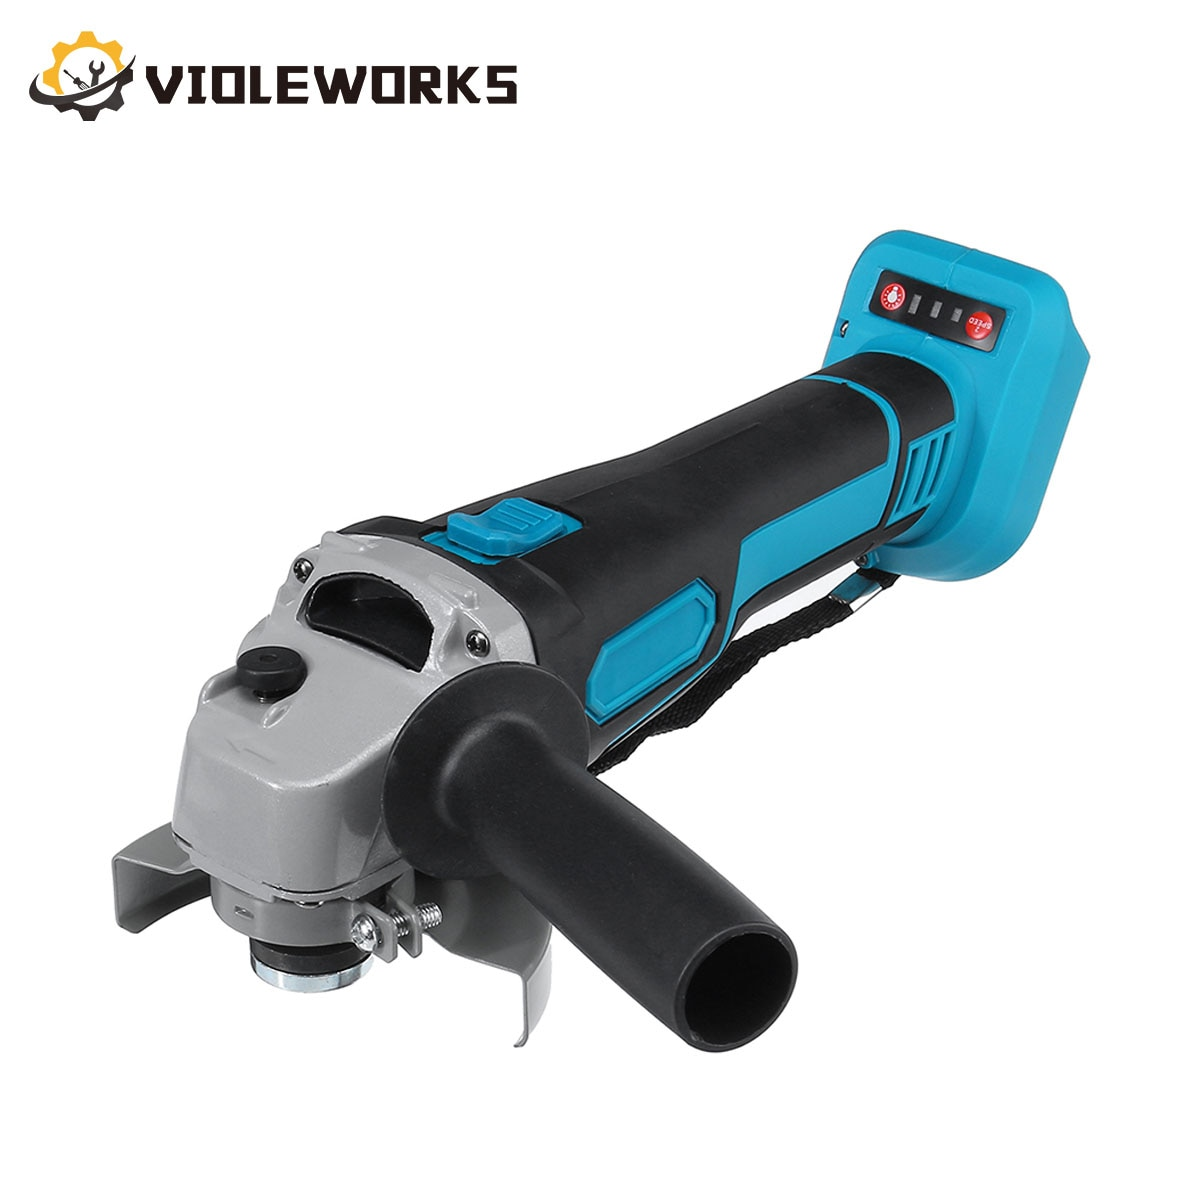 800W 18V 125mm Brushless Cordless Impact Angle Grinder Variable Speed for Makita 18V Battery Cutting Machine Grinder Polisher